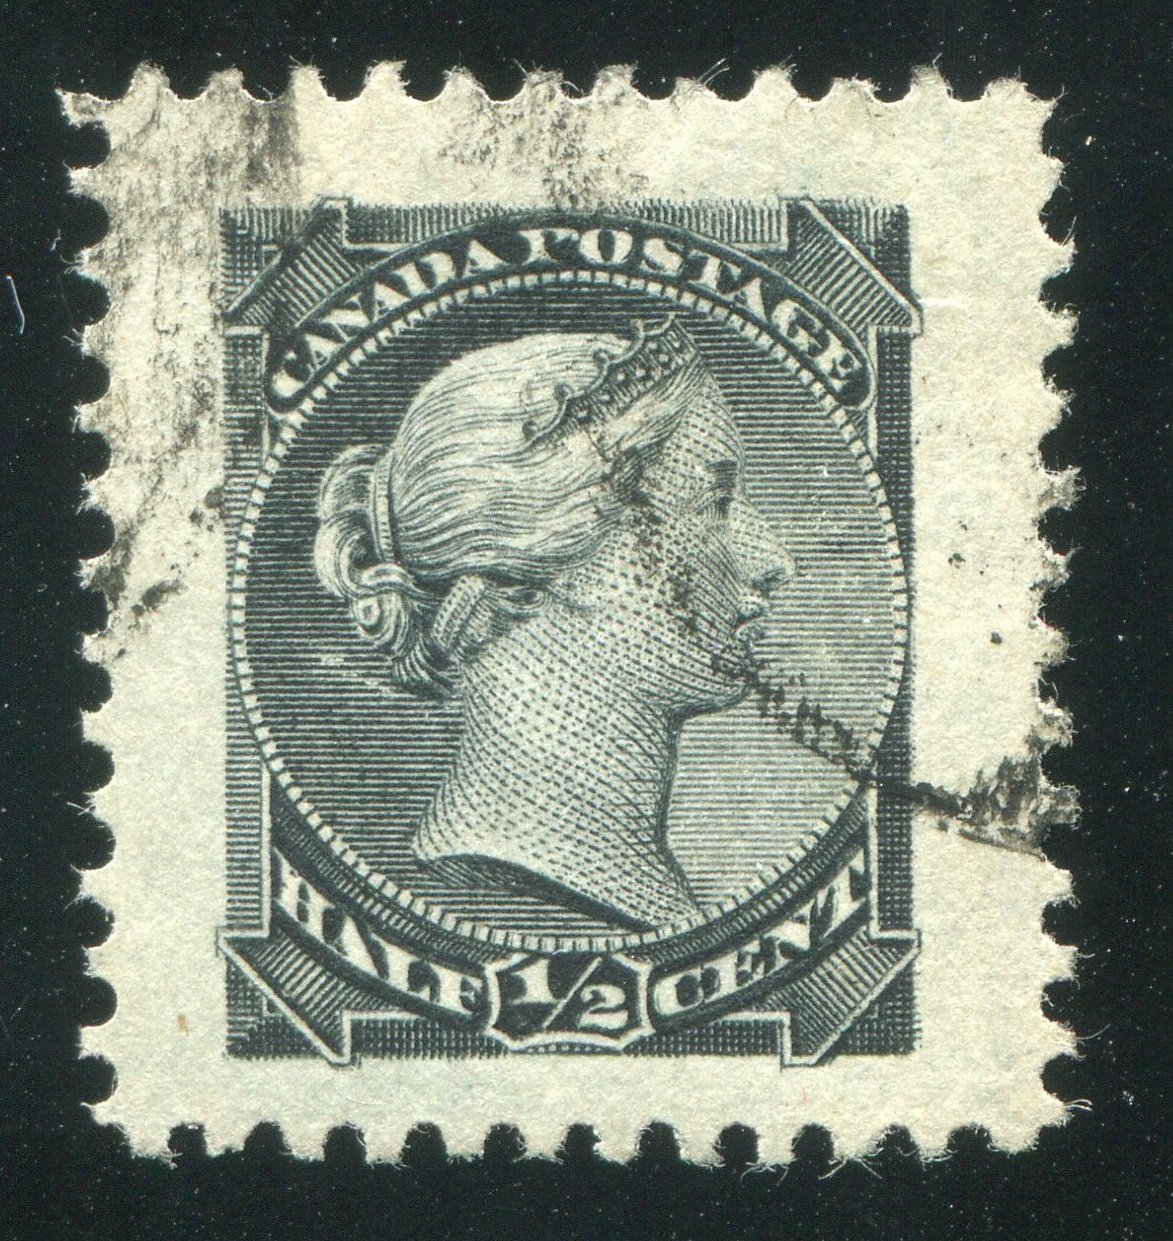 0034CA1710 - Canada #34vii - Used Major Re-Entry